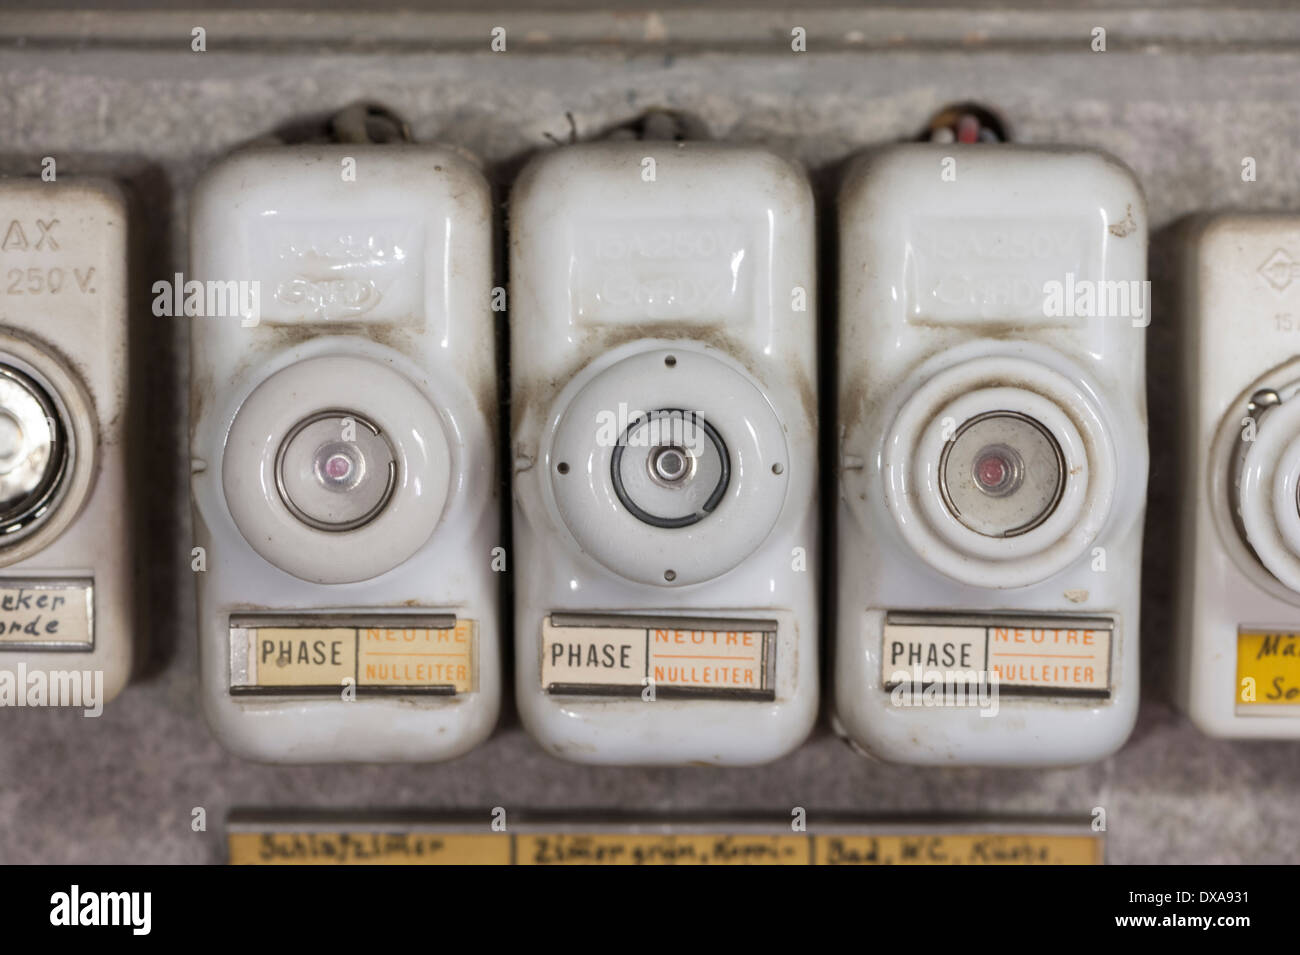 Close-up of an array of old-fashioned lead fuses in a household fuse-box (Swiss model, built around the 1970ties) - Stock Image